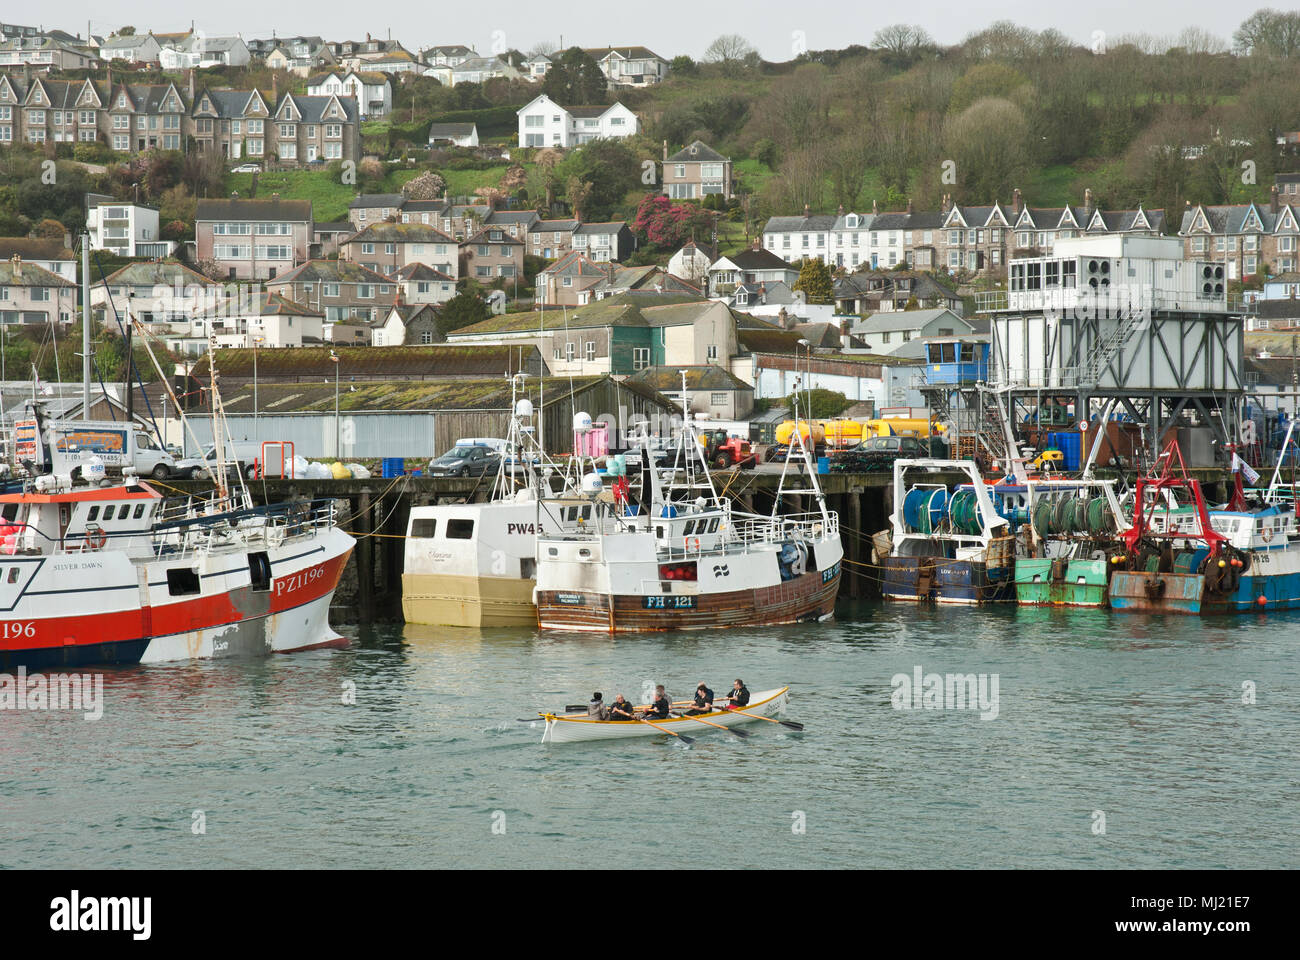 The traditional Cornish racing gig Pendeen training in Newlyn Harbour in the foreground with fishing vessels and the town of Newlyn in the background. - Stock Image